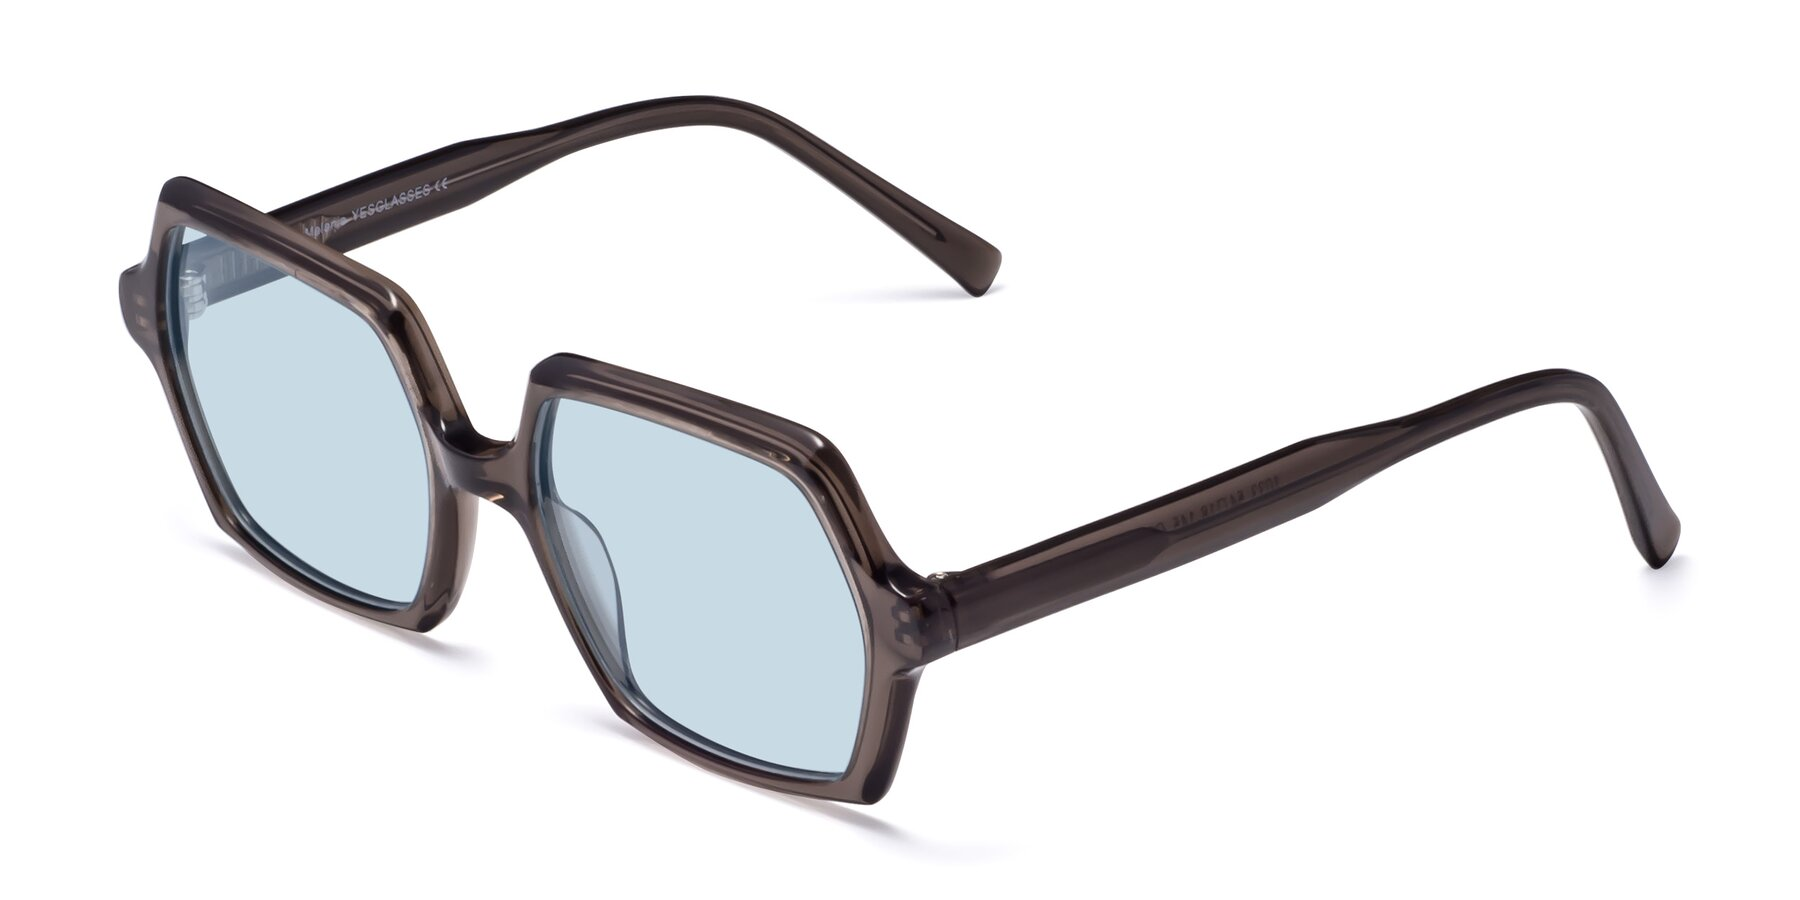 Angle of Melanie in Transparent Gray with Light Blue Tinted Lenses